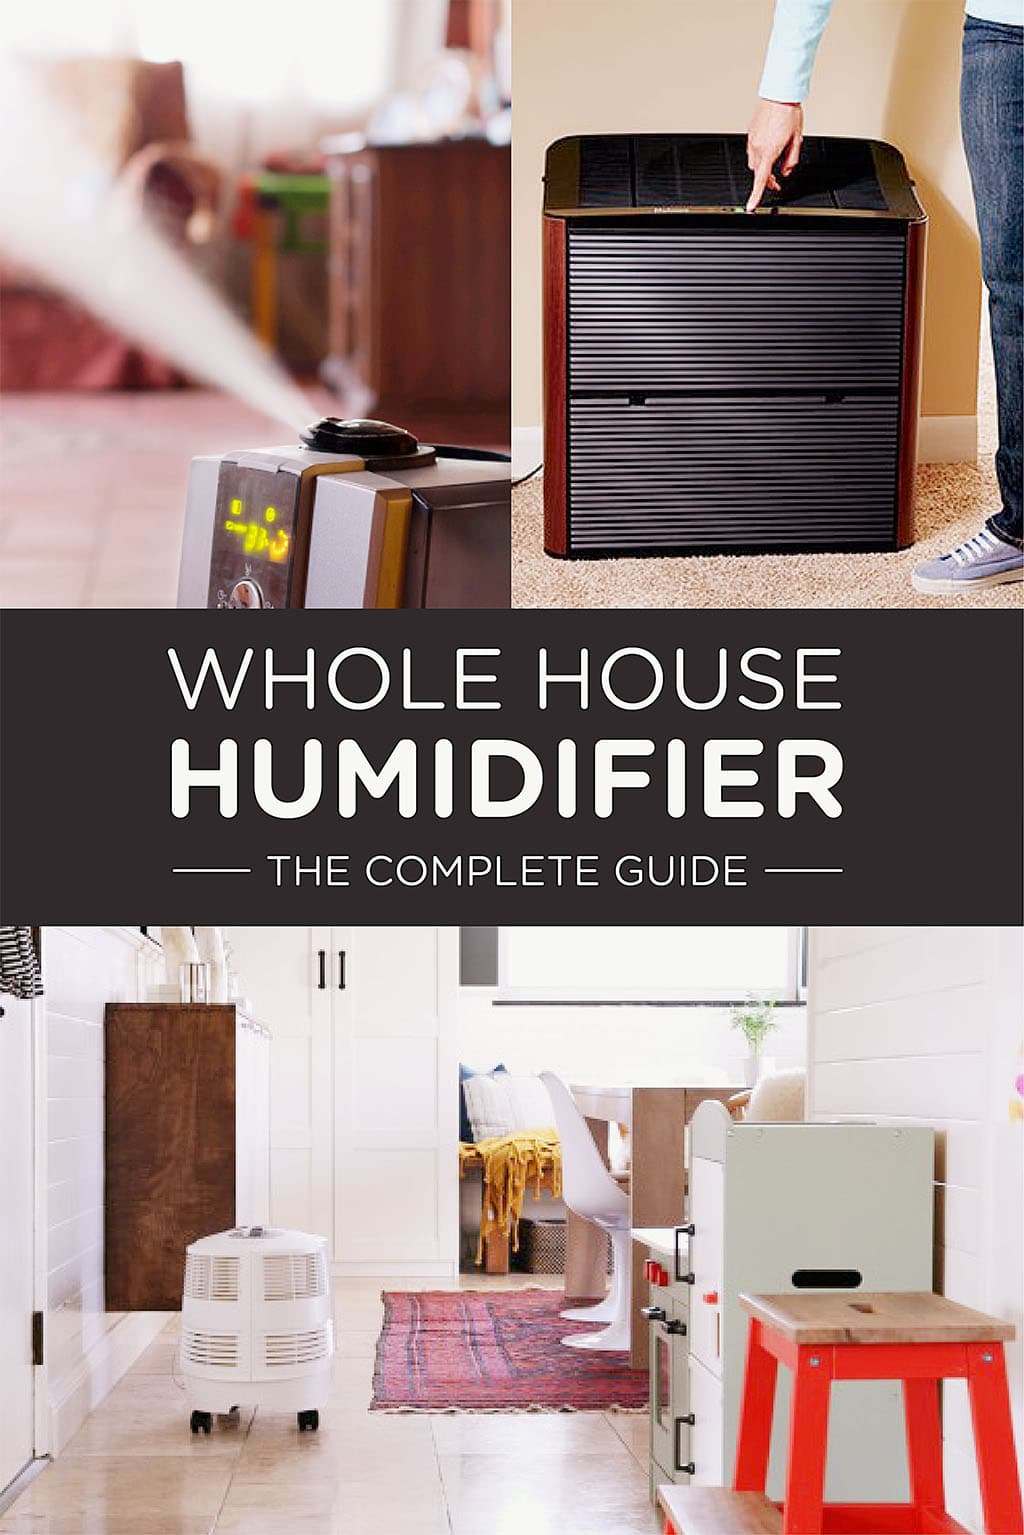 Whole House Humidifier- The Complete Guide